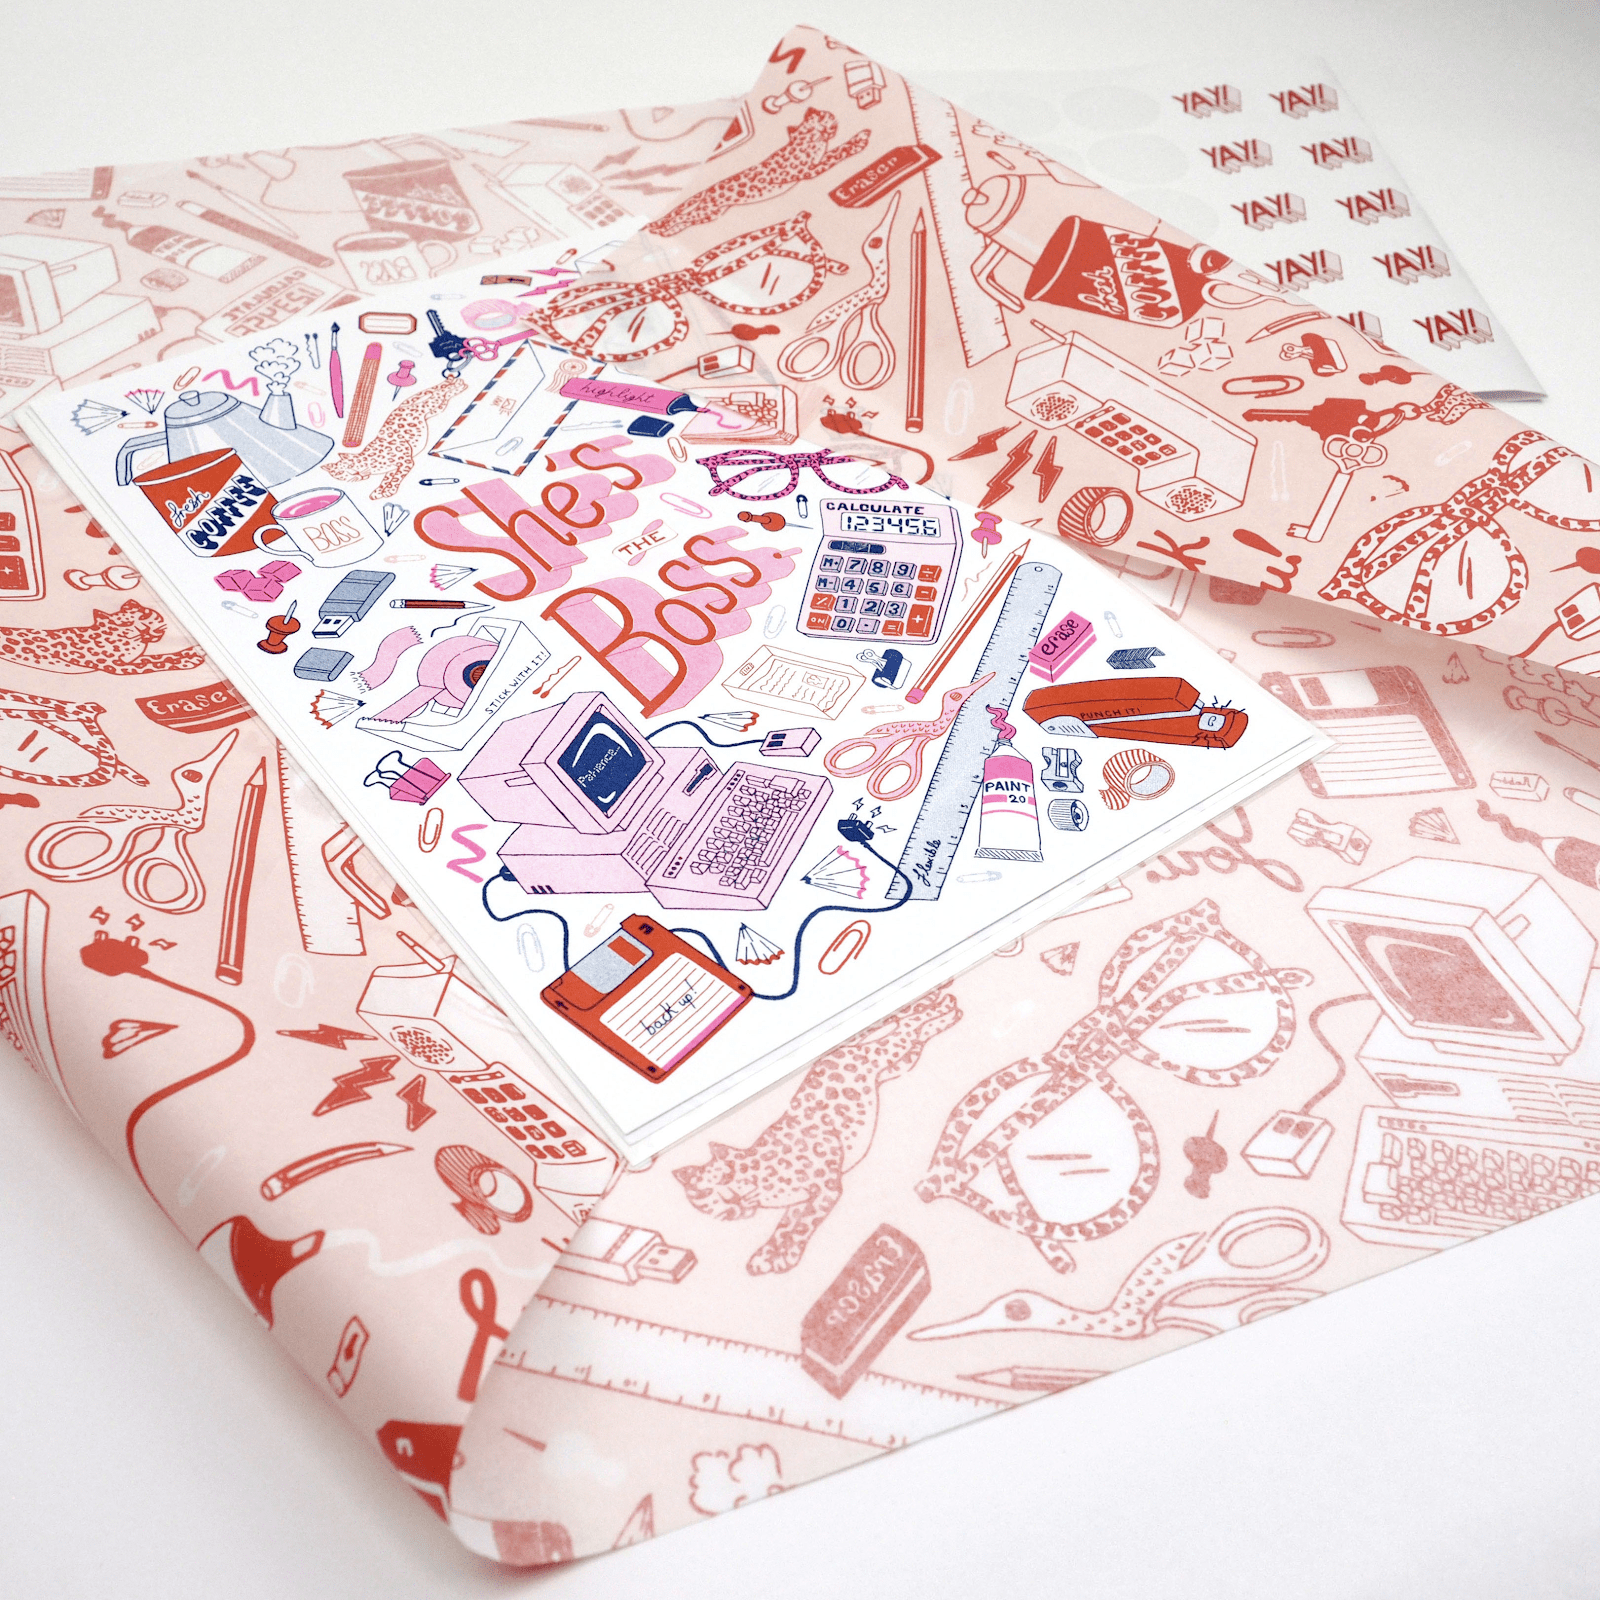 Heavily illustrated tissue paper design by Jacqueline Colley